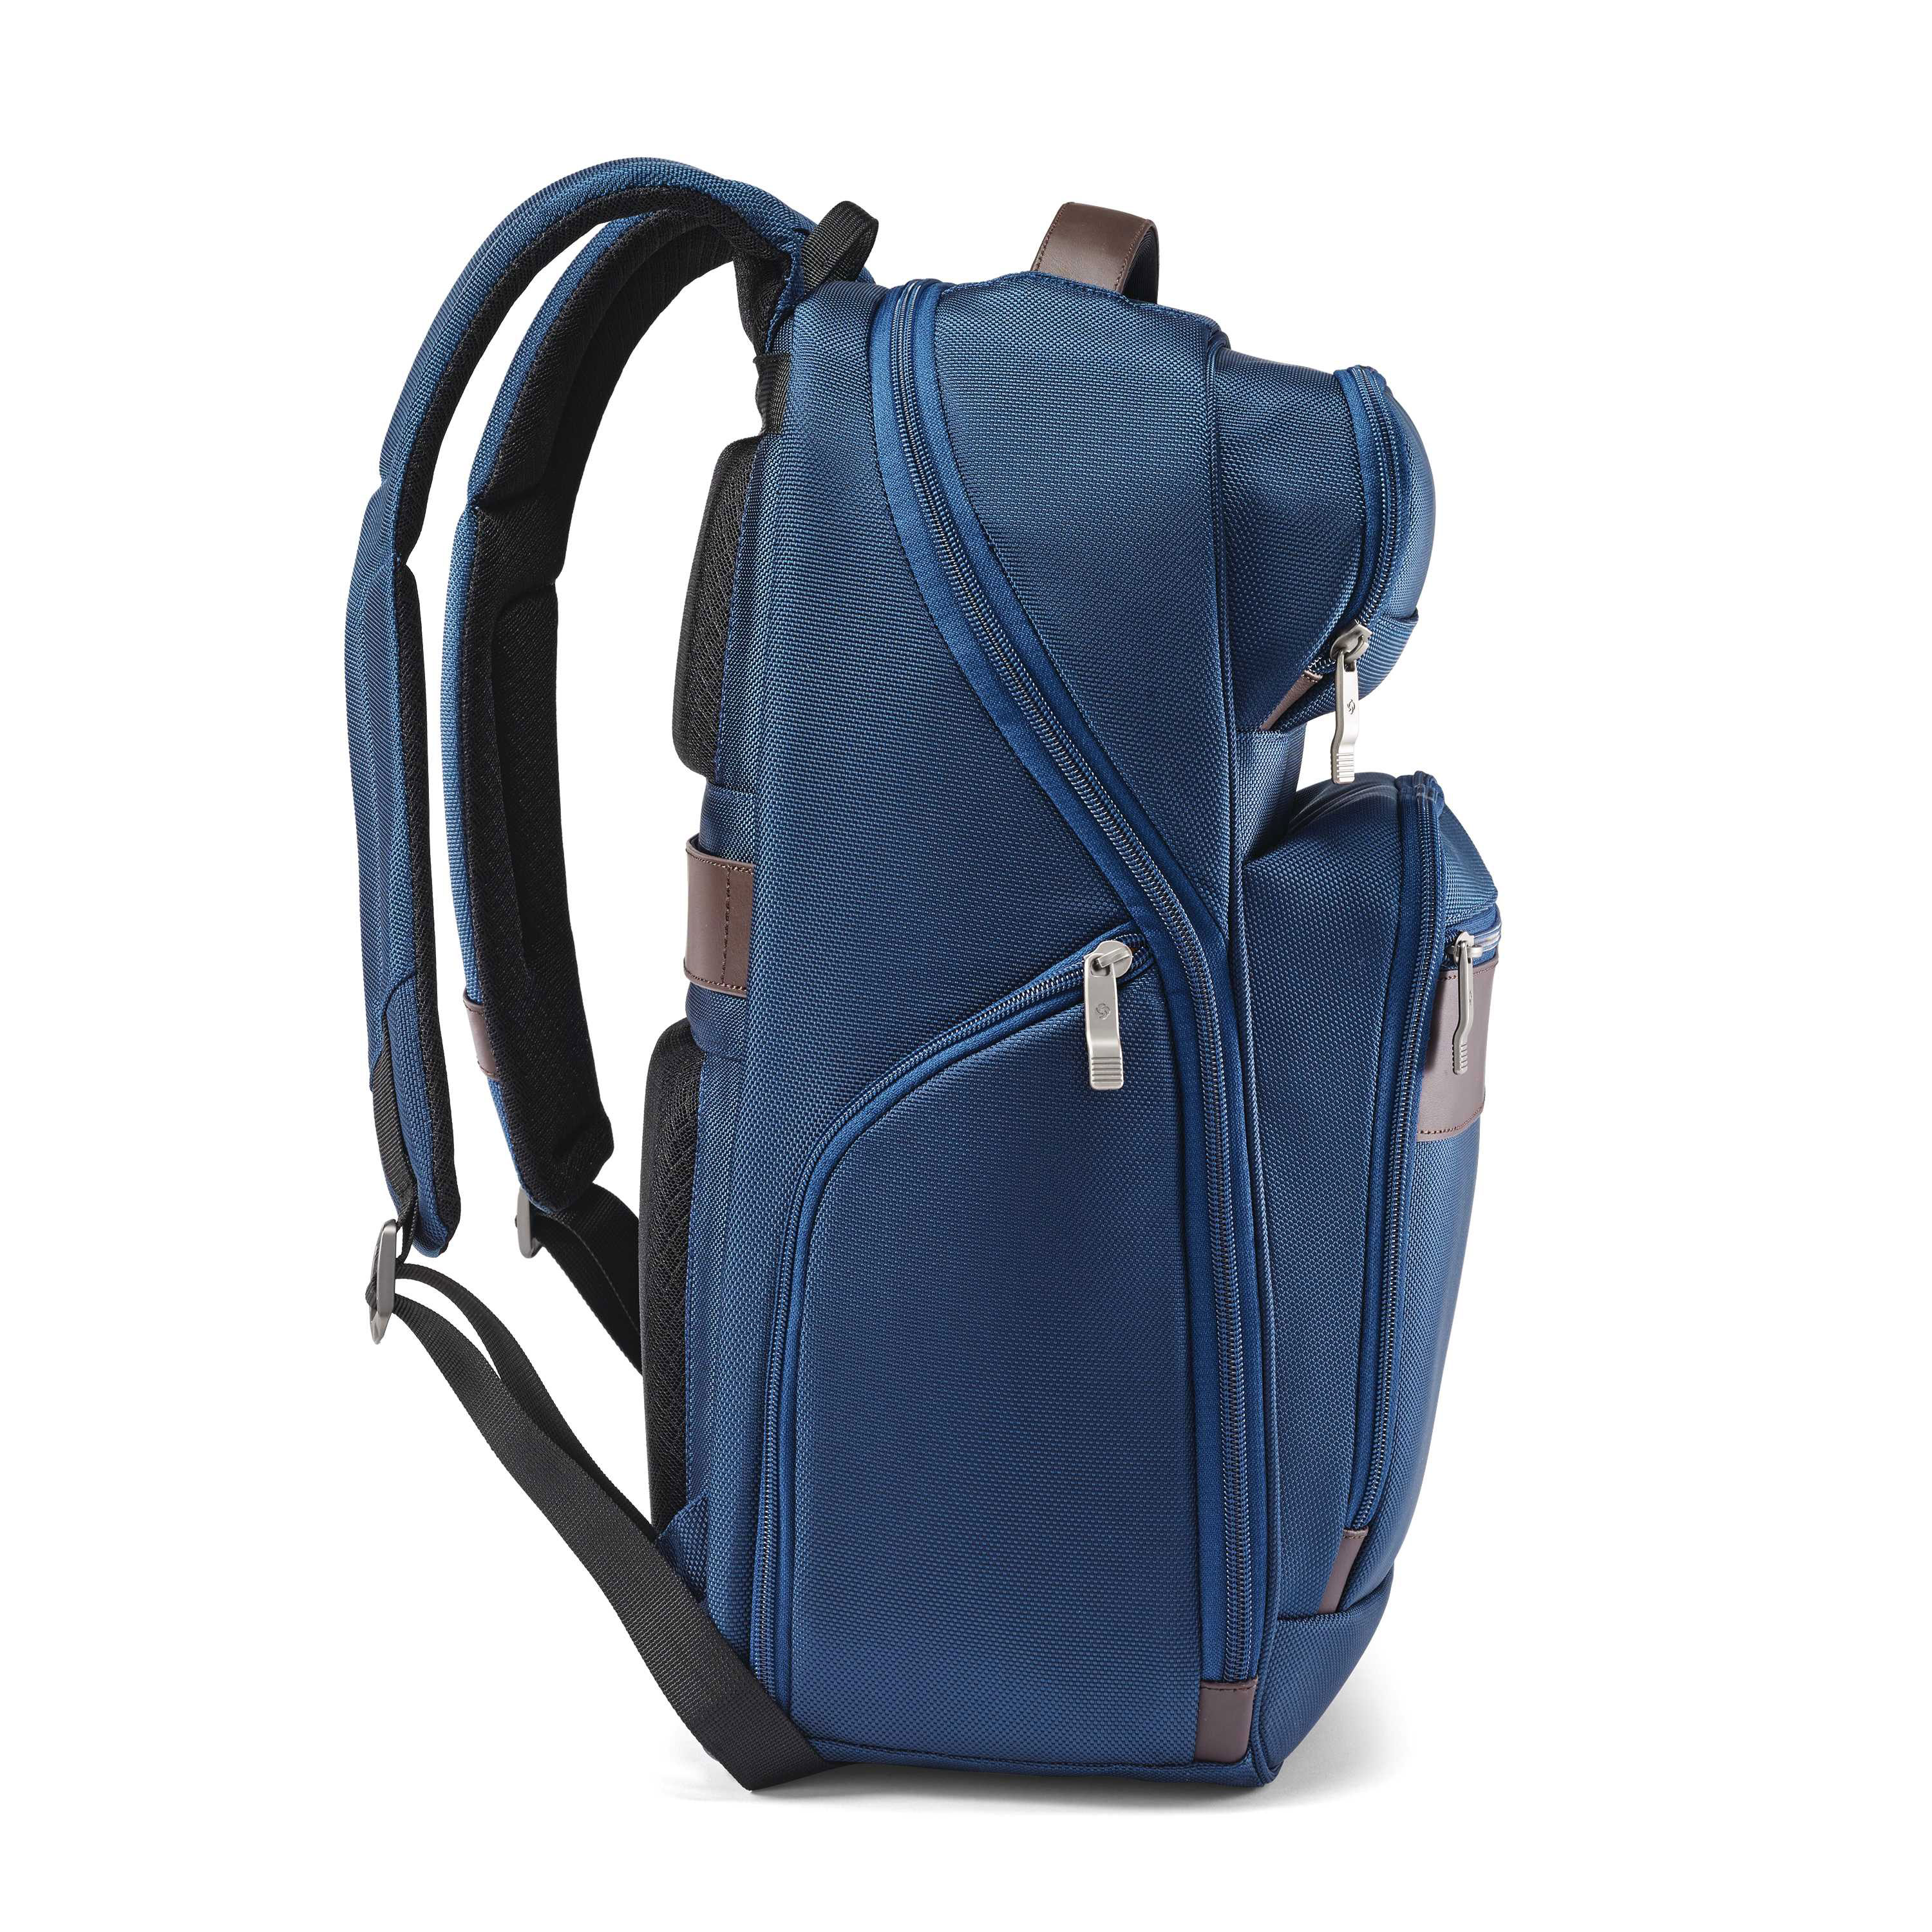 Samsonite-Kombi-Large-Backpack thumbnail 9